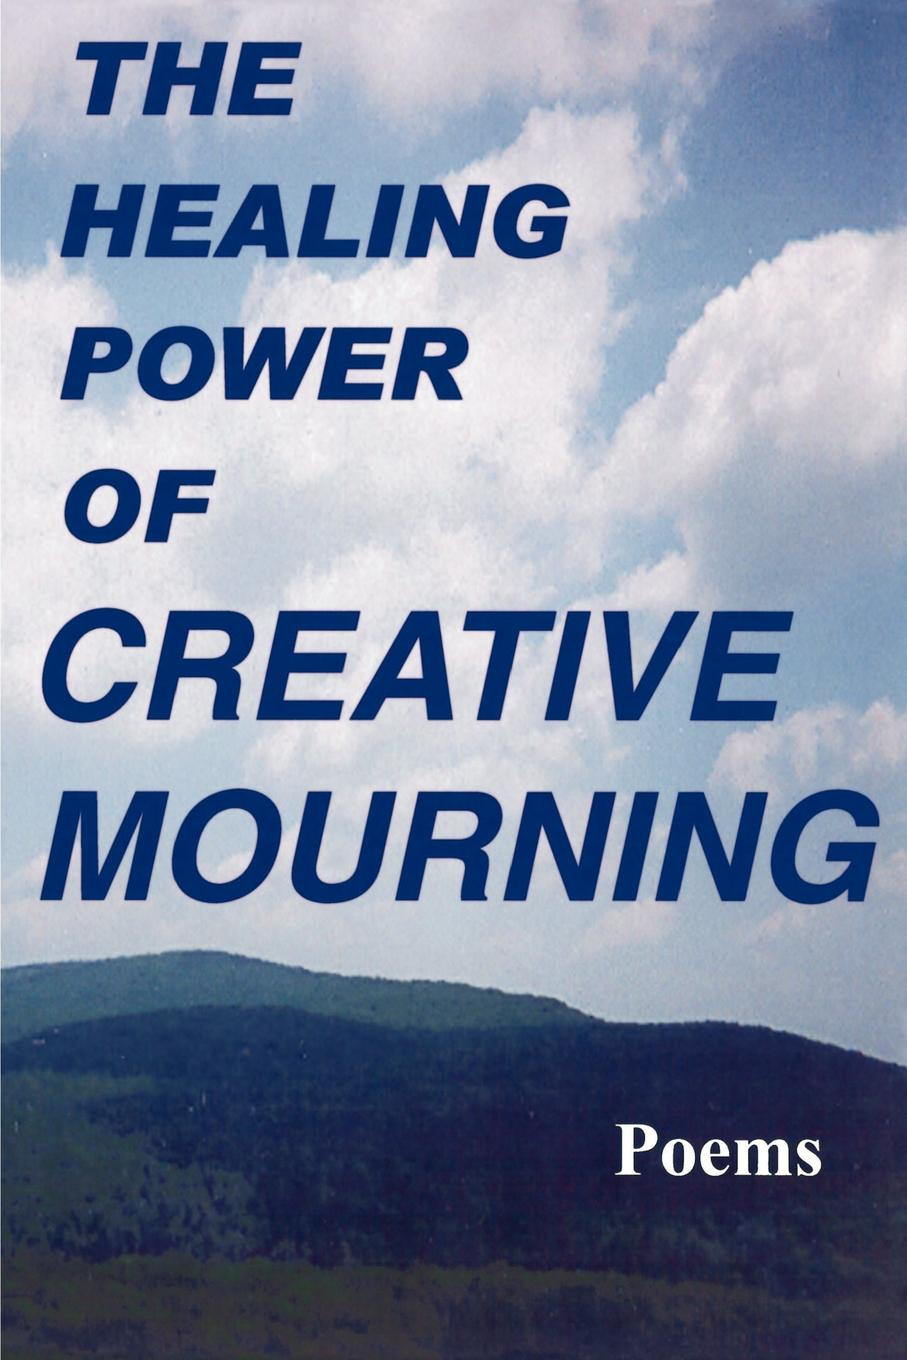 Jan Yager, Fred Yager, Scott Yager The Healing Power of Creative Mourning jan yager phd jan yager tthe fast track guide to speaking in public